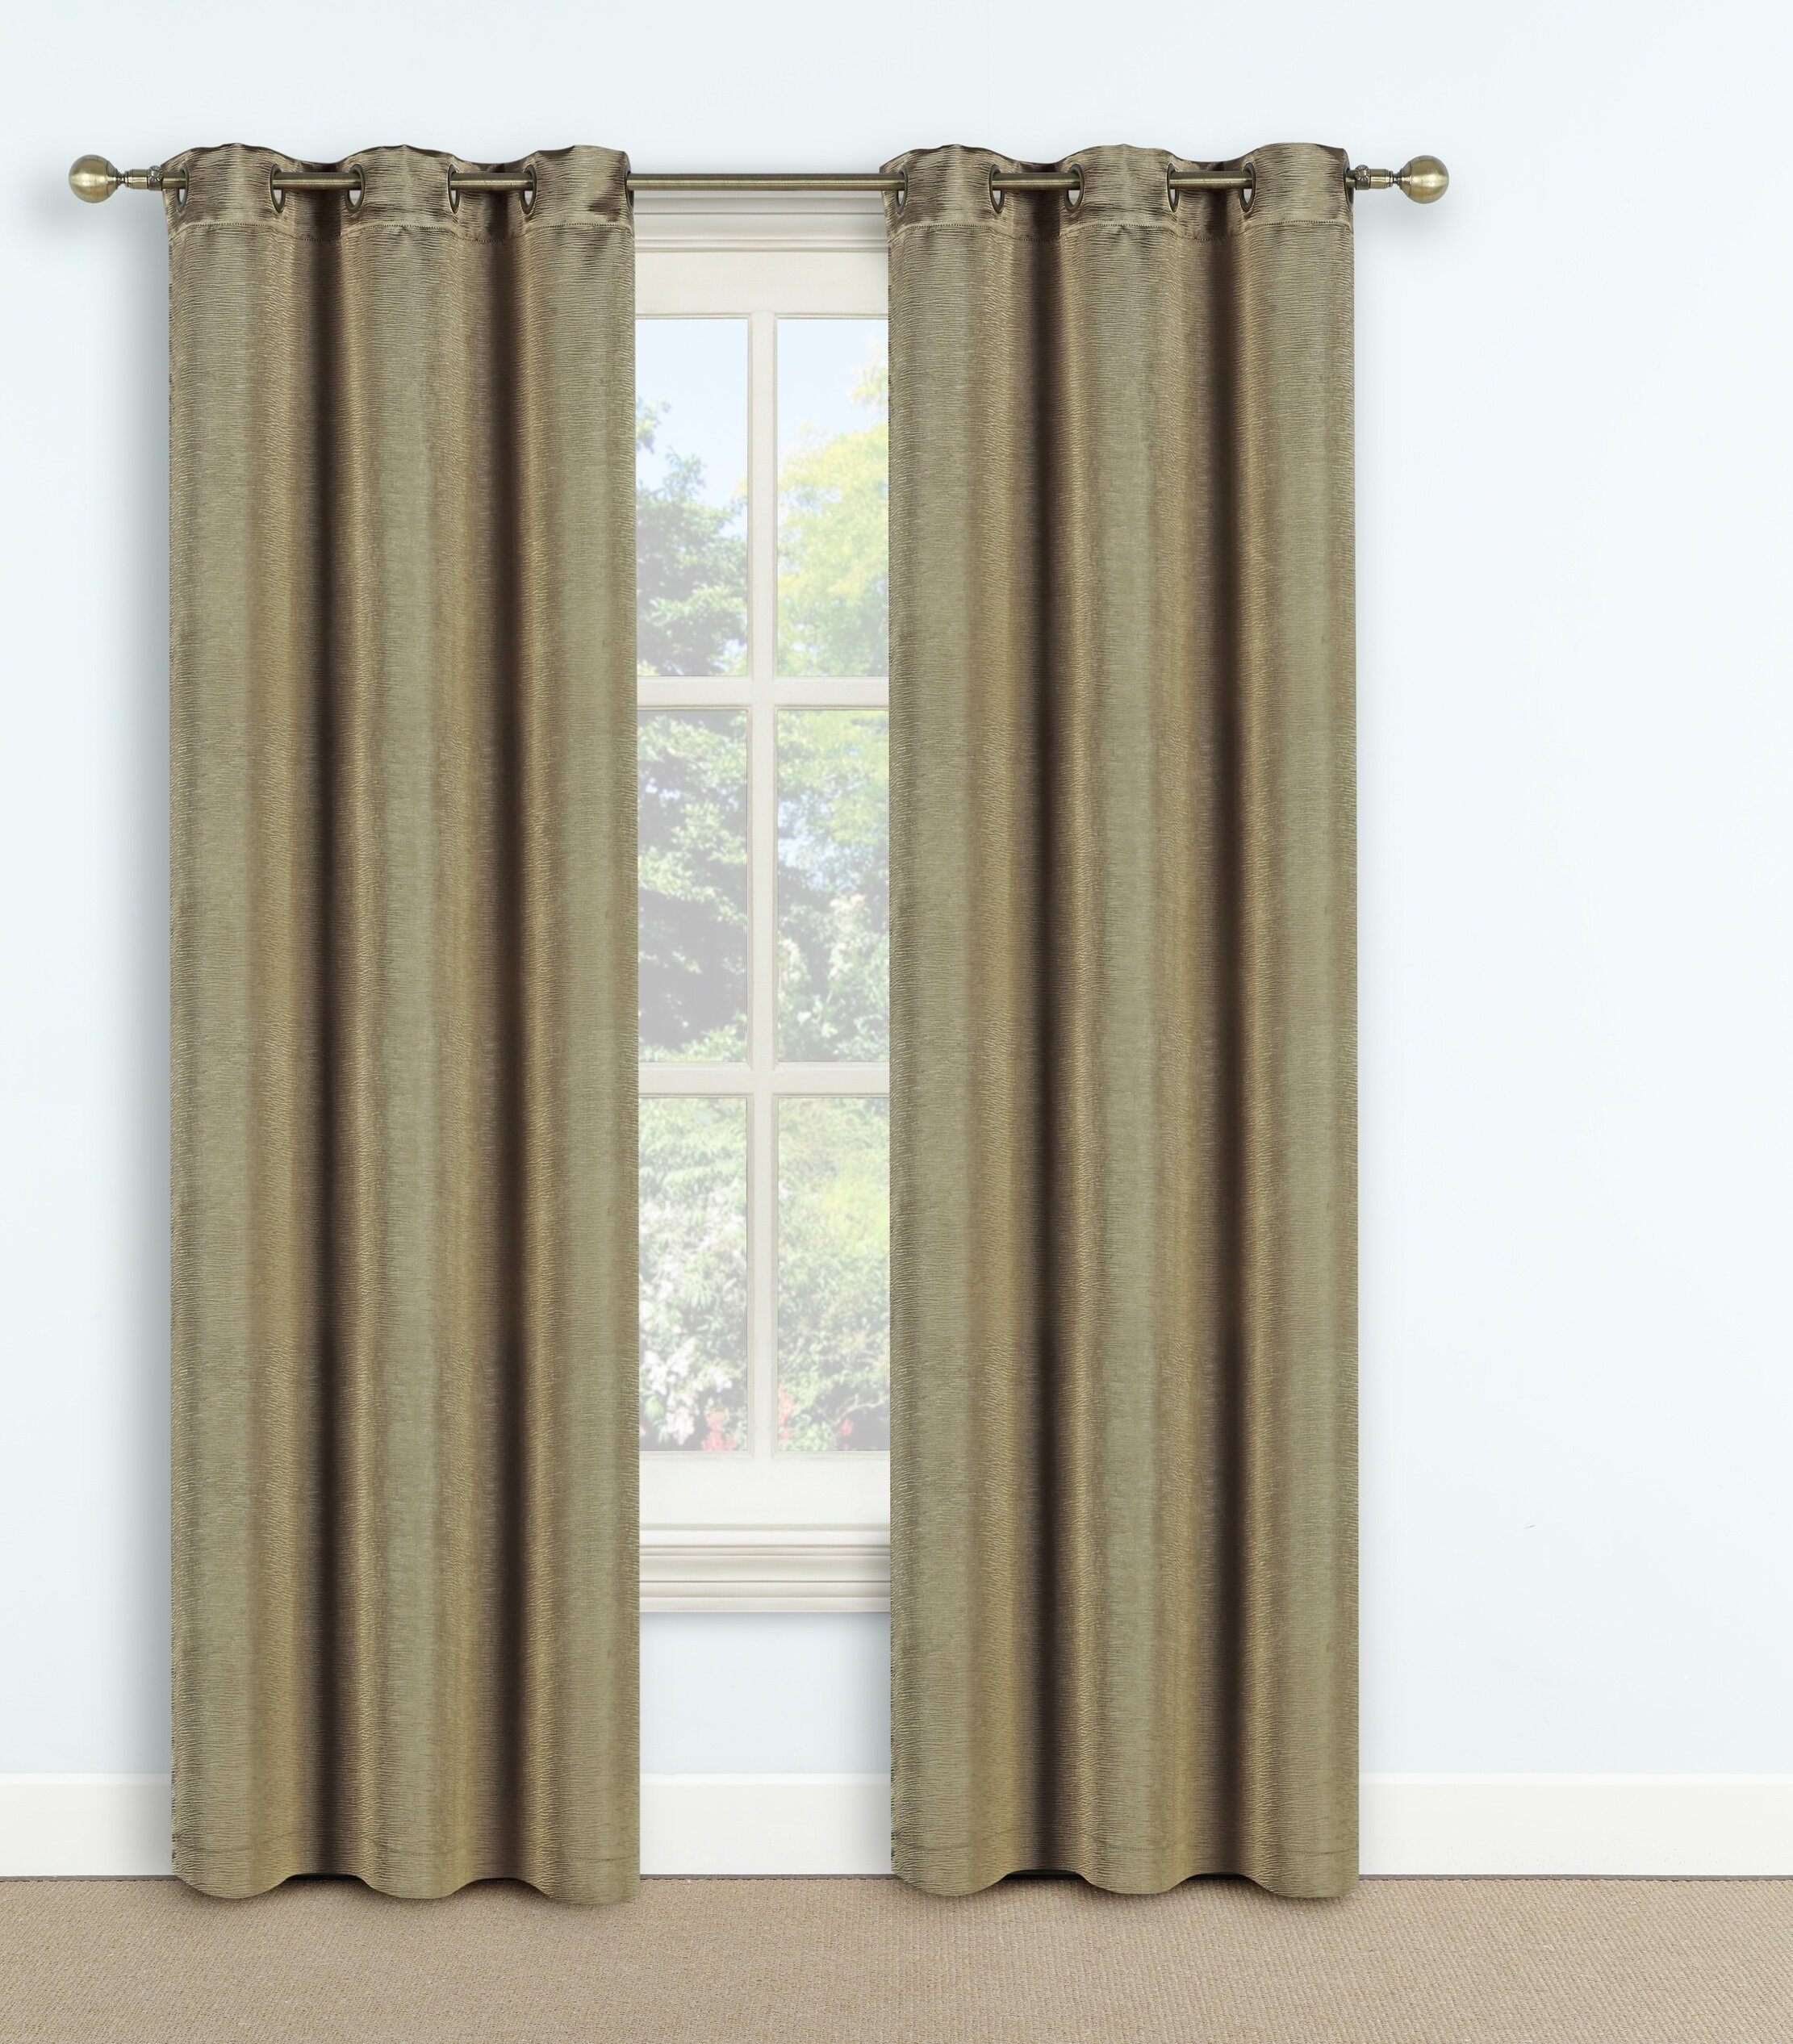 Steubenville Solid Max Blackout Thermal Grommet Single Curtain Panel Throughout Luxury Collection Faux Leather Blackout Single Curtain Panels (View 7 of 20)